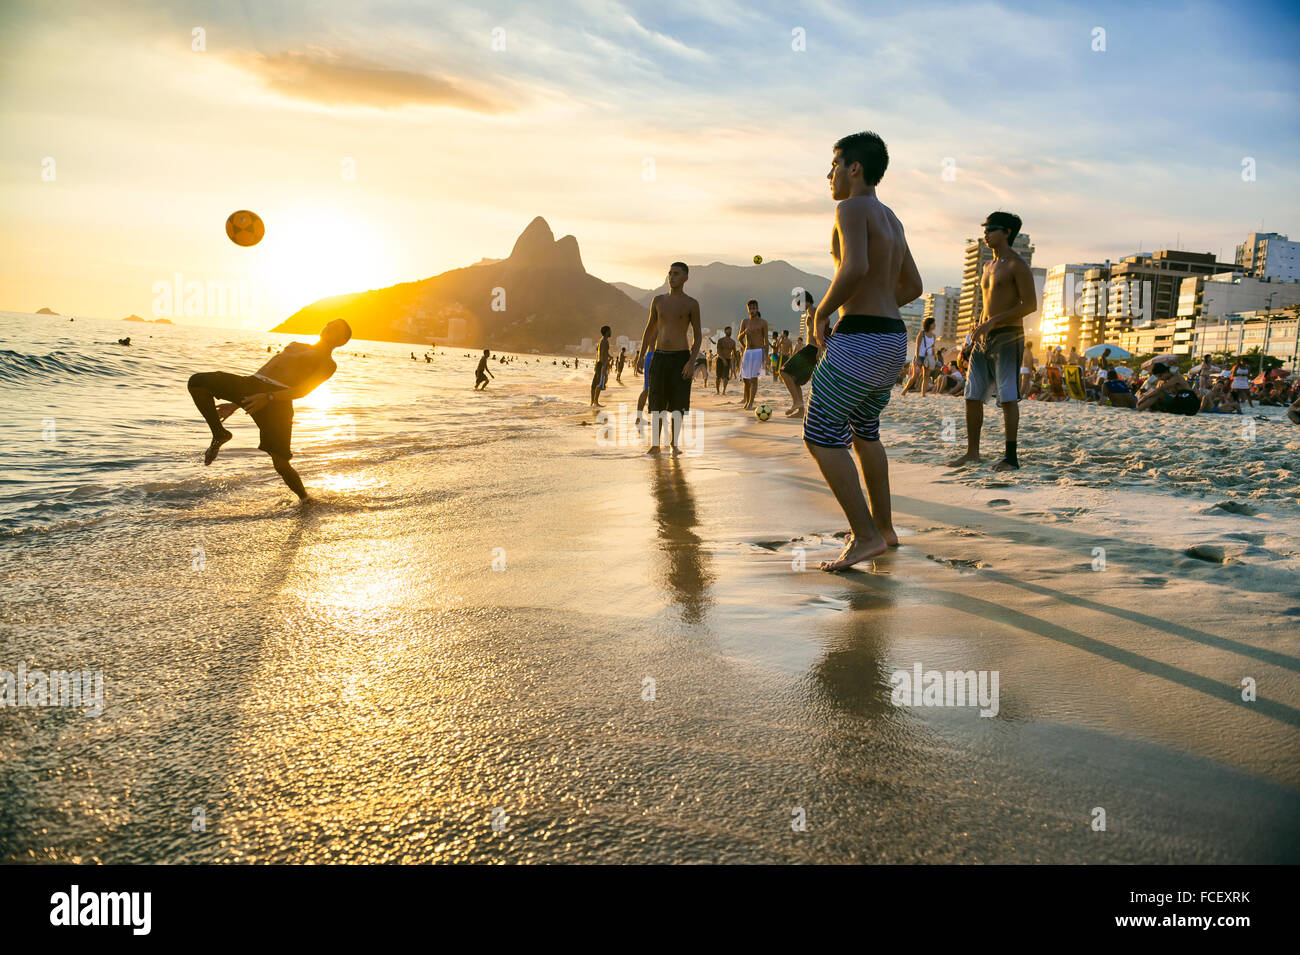 RIO DE JANEIRO - JANUARY 18, 2014: Groups of young Brazilians play keepy uppy beach football, or altinho, at sunset - Stock Image